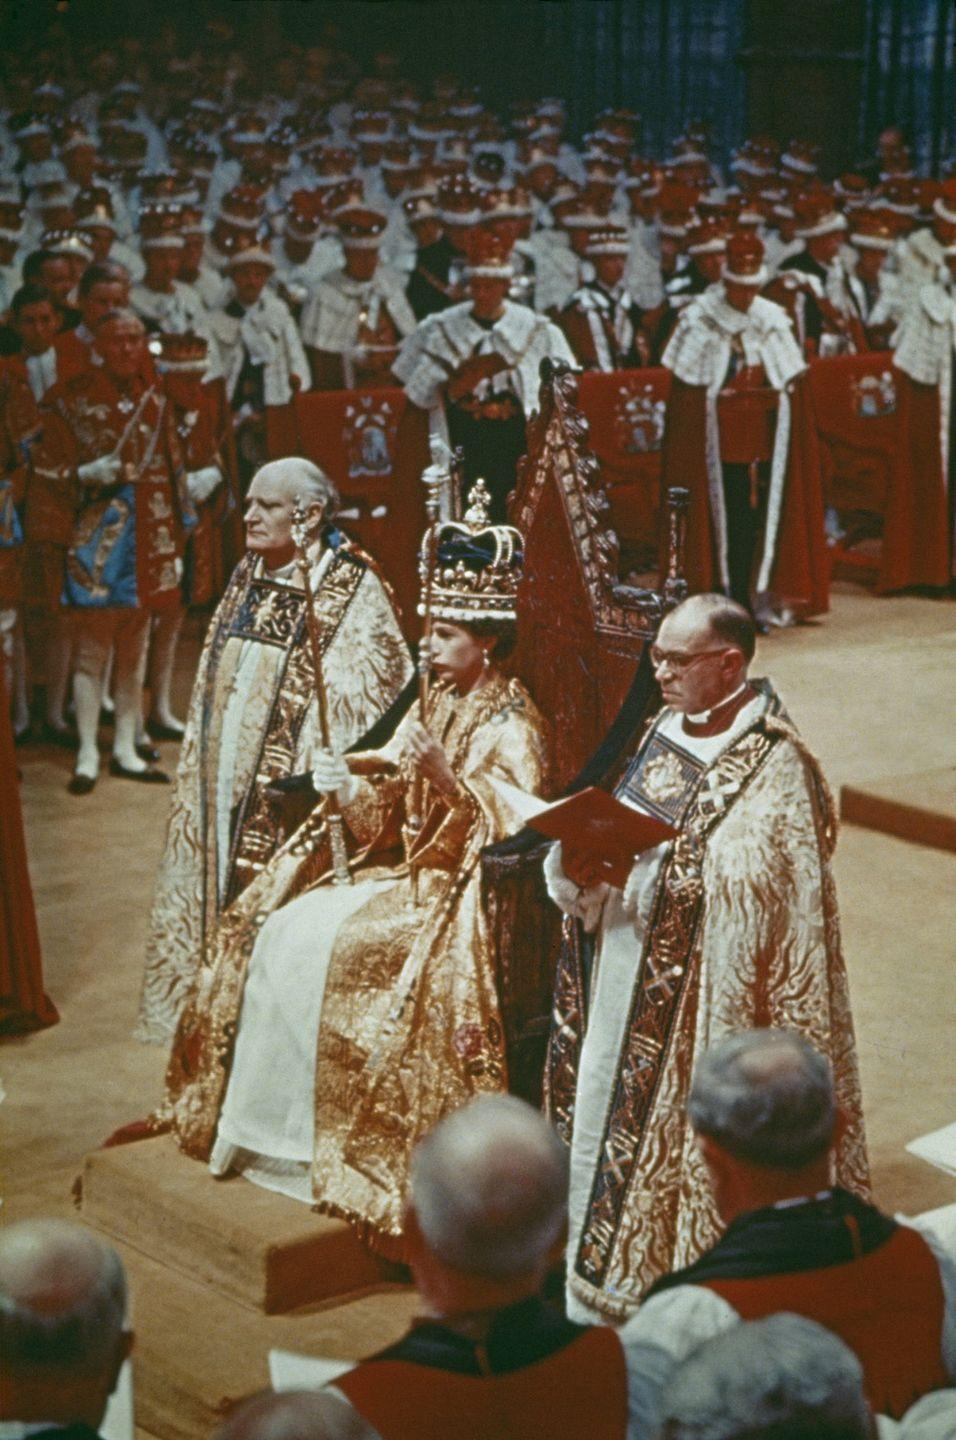 "<p>June 2 marks the coronation of Queen Elizabeth II. <a href=""http://www.history.com/this-day-in-history/coronation-of-queen-elizabeth-ii"" rel=""nofollow noopener"" target=""_blank"" data-ylk=""slk:Hundreds of millions"" class=""link rapid-noclick-resp"">Hundreds of millions</a> tune in on their televisions and radios to follow the day's momentous events. </p>"